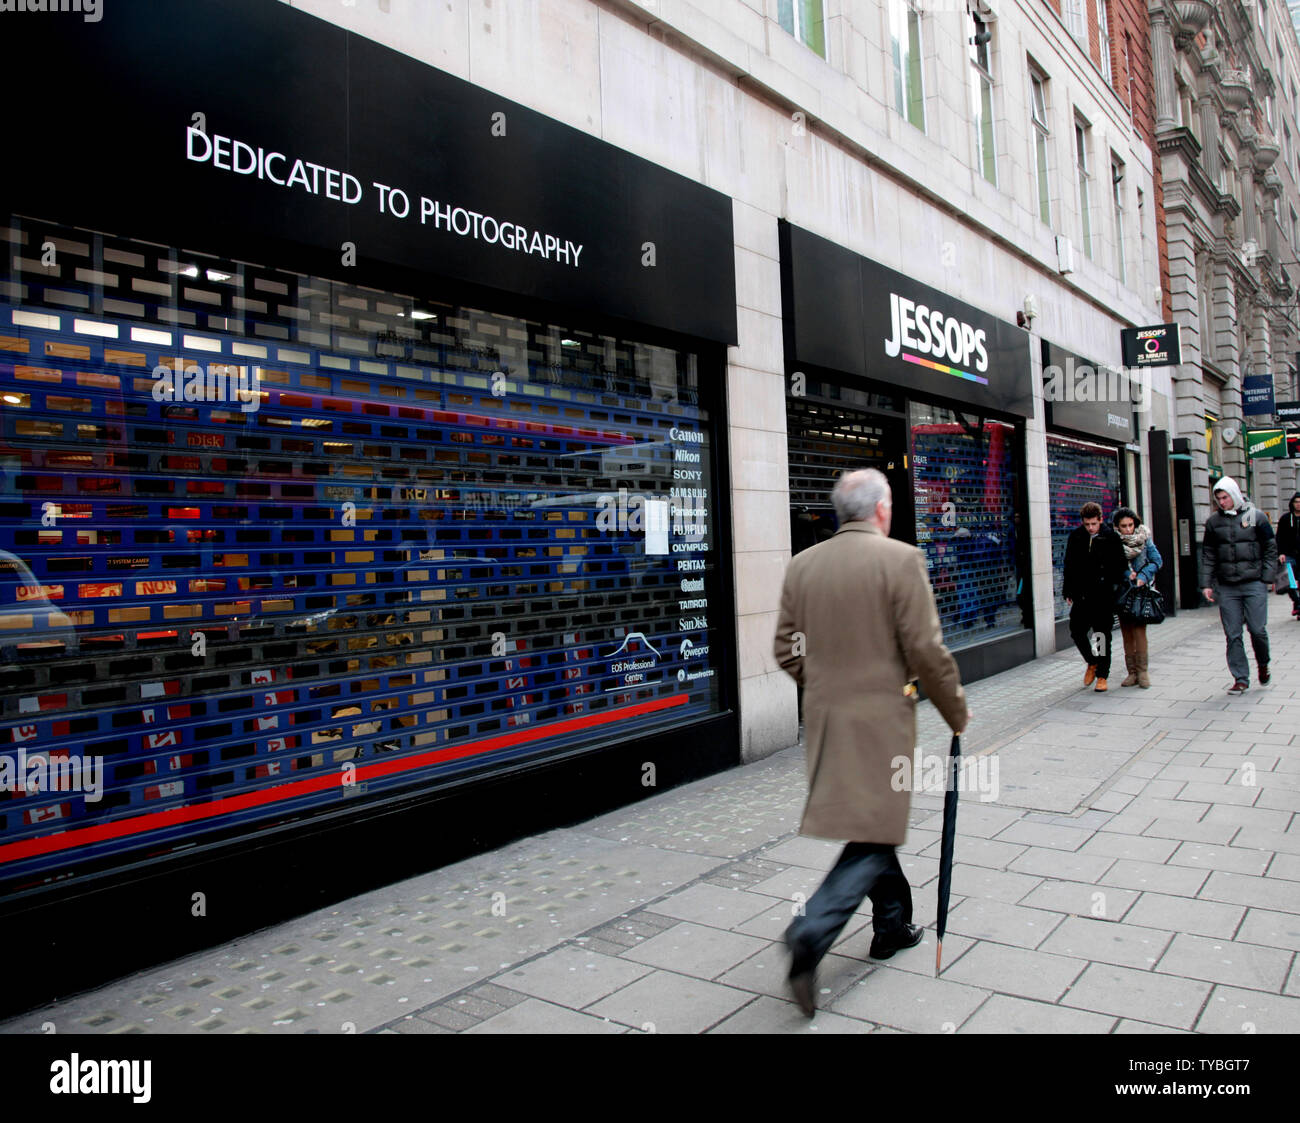 Shoppers walk past Jessops camera store, Britain's largest camera retailer which last week went into administration on the day HMV Britain's biggest music and entertainment chain went into administration 92 years after it opened it's first store on London's Oxford St, January 15, 2013. Britain's retail landscape remains bleak with many major retailers continuing to slash prices well into the new year.     UPI/Hugo Philpott - Stock Image